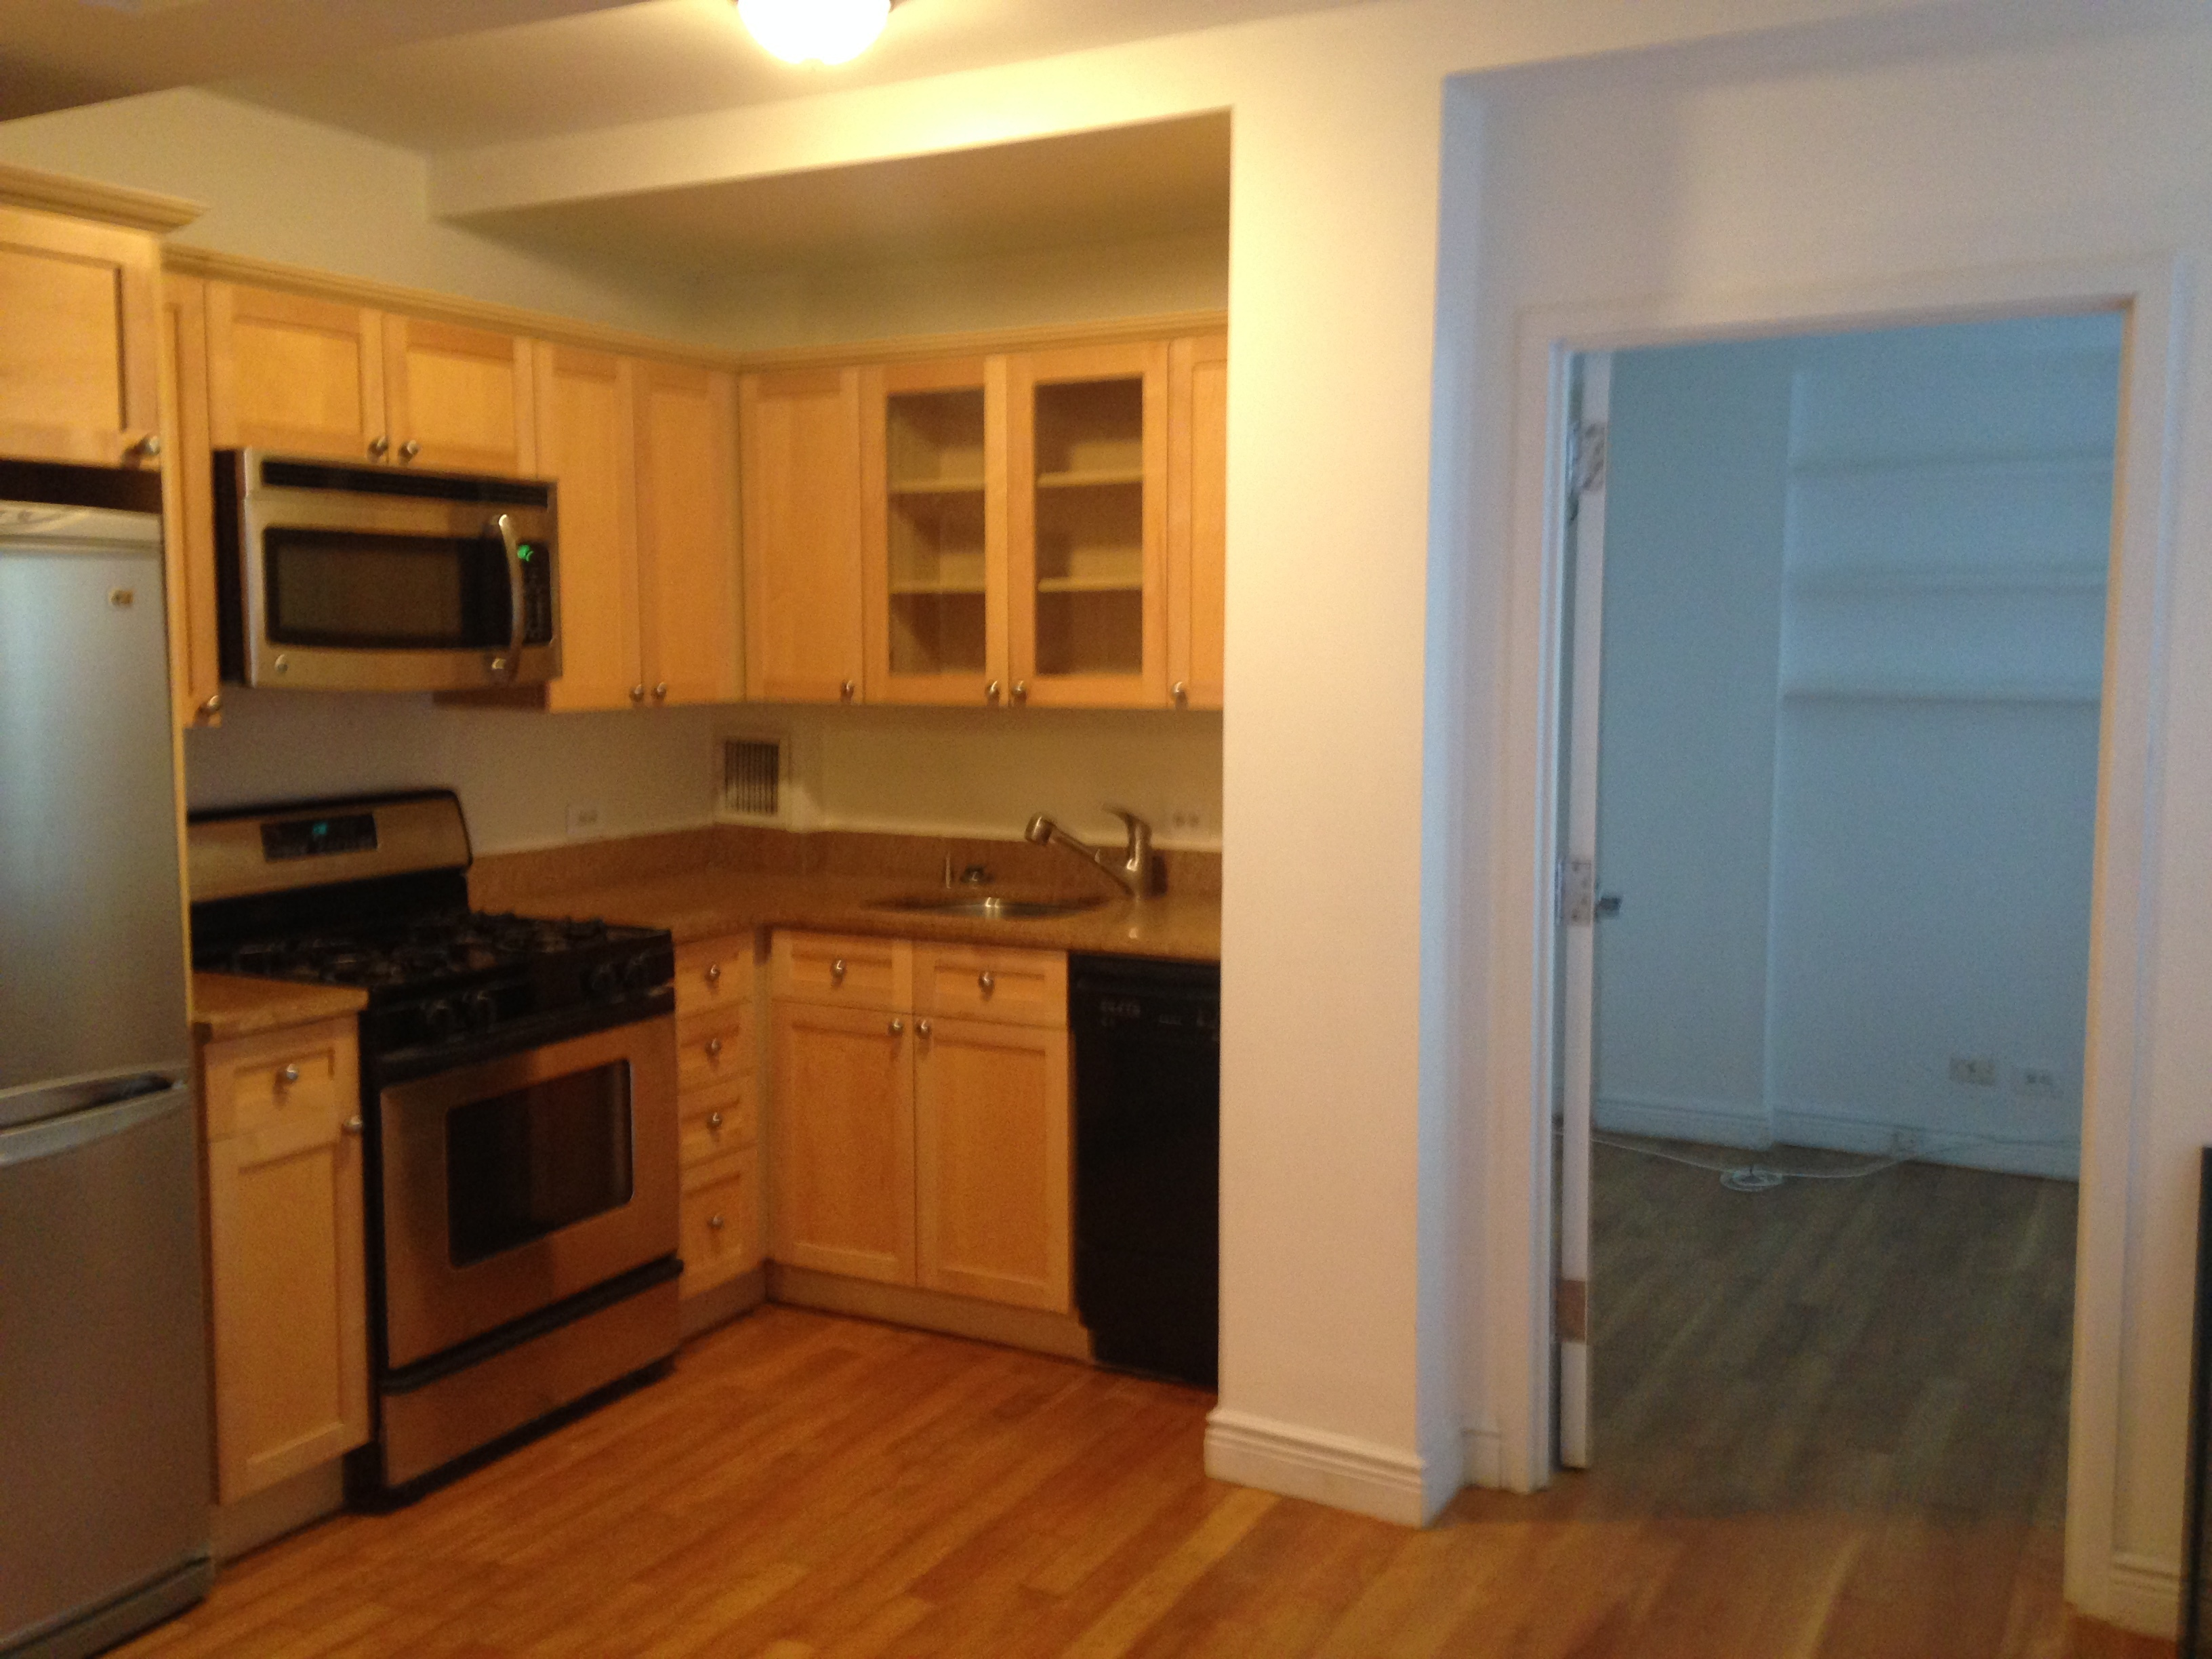 Apartment for sale at 435 East 76th Street, Apt 2D